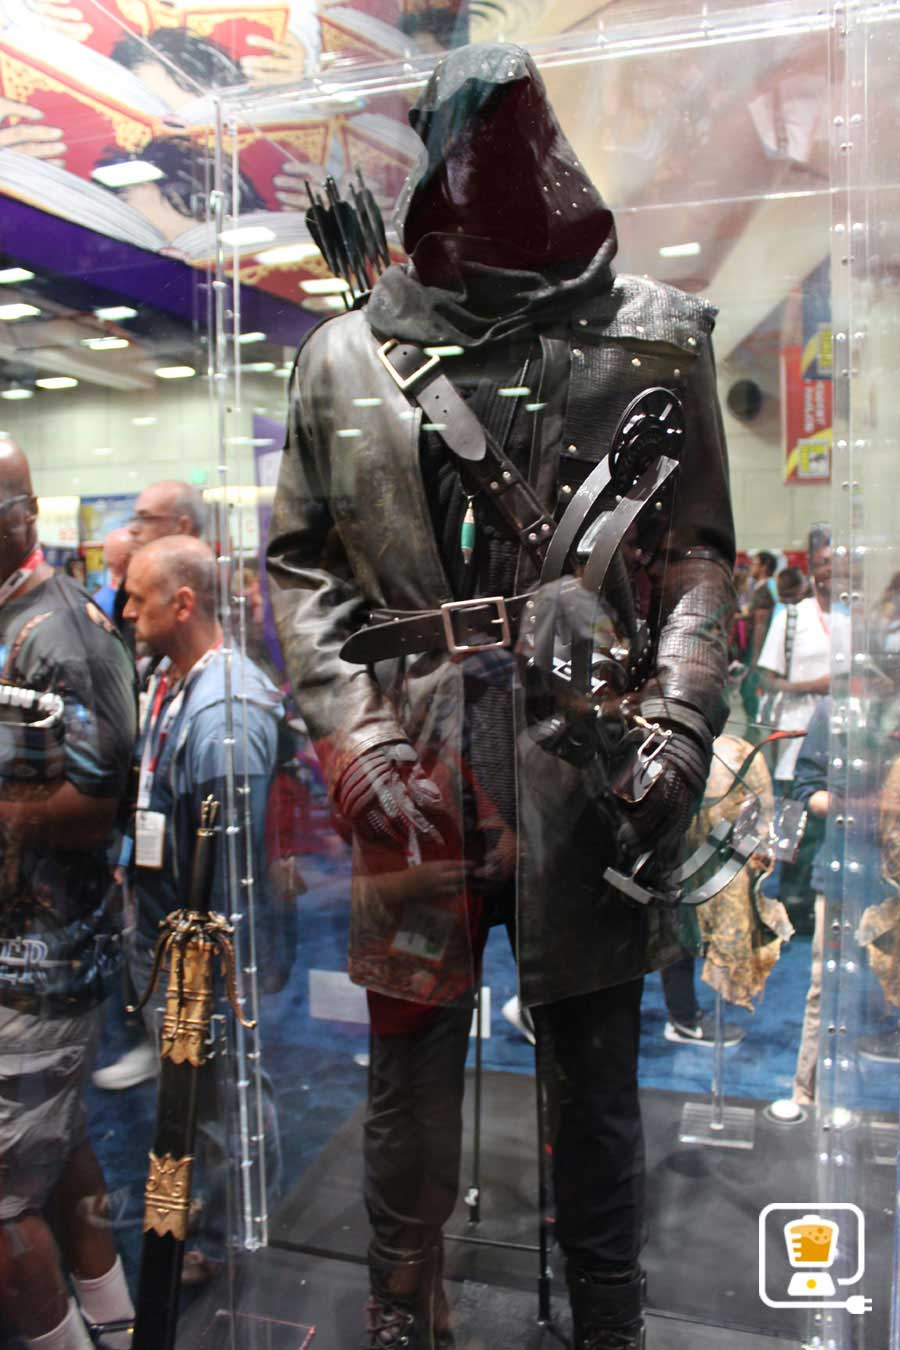 See Flash And Arrow's Amazing Costumes And Gadgets On Display At Comic-Con #32890